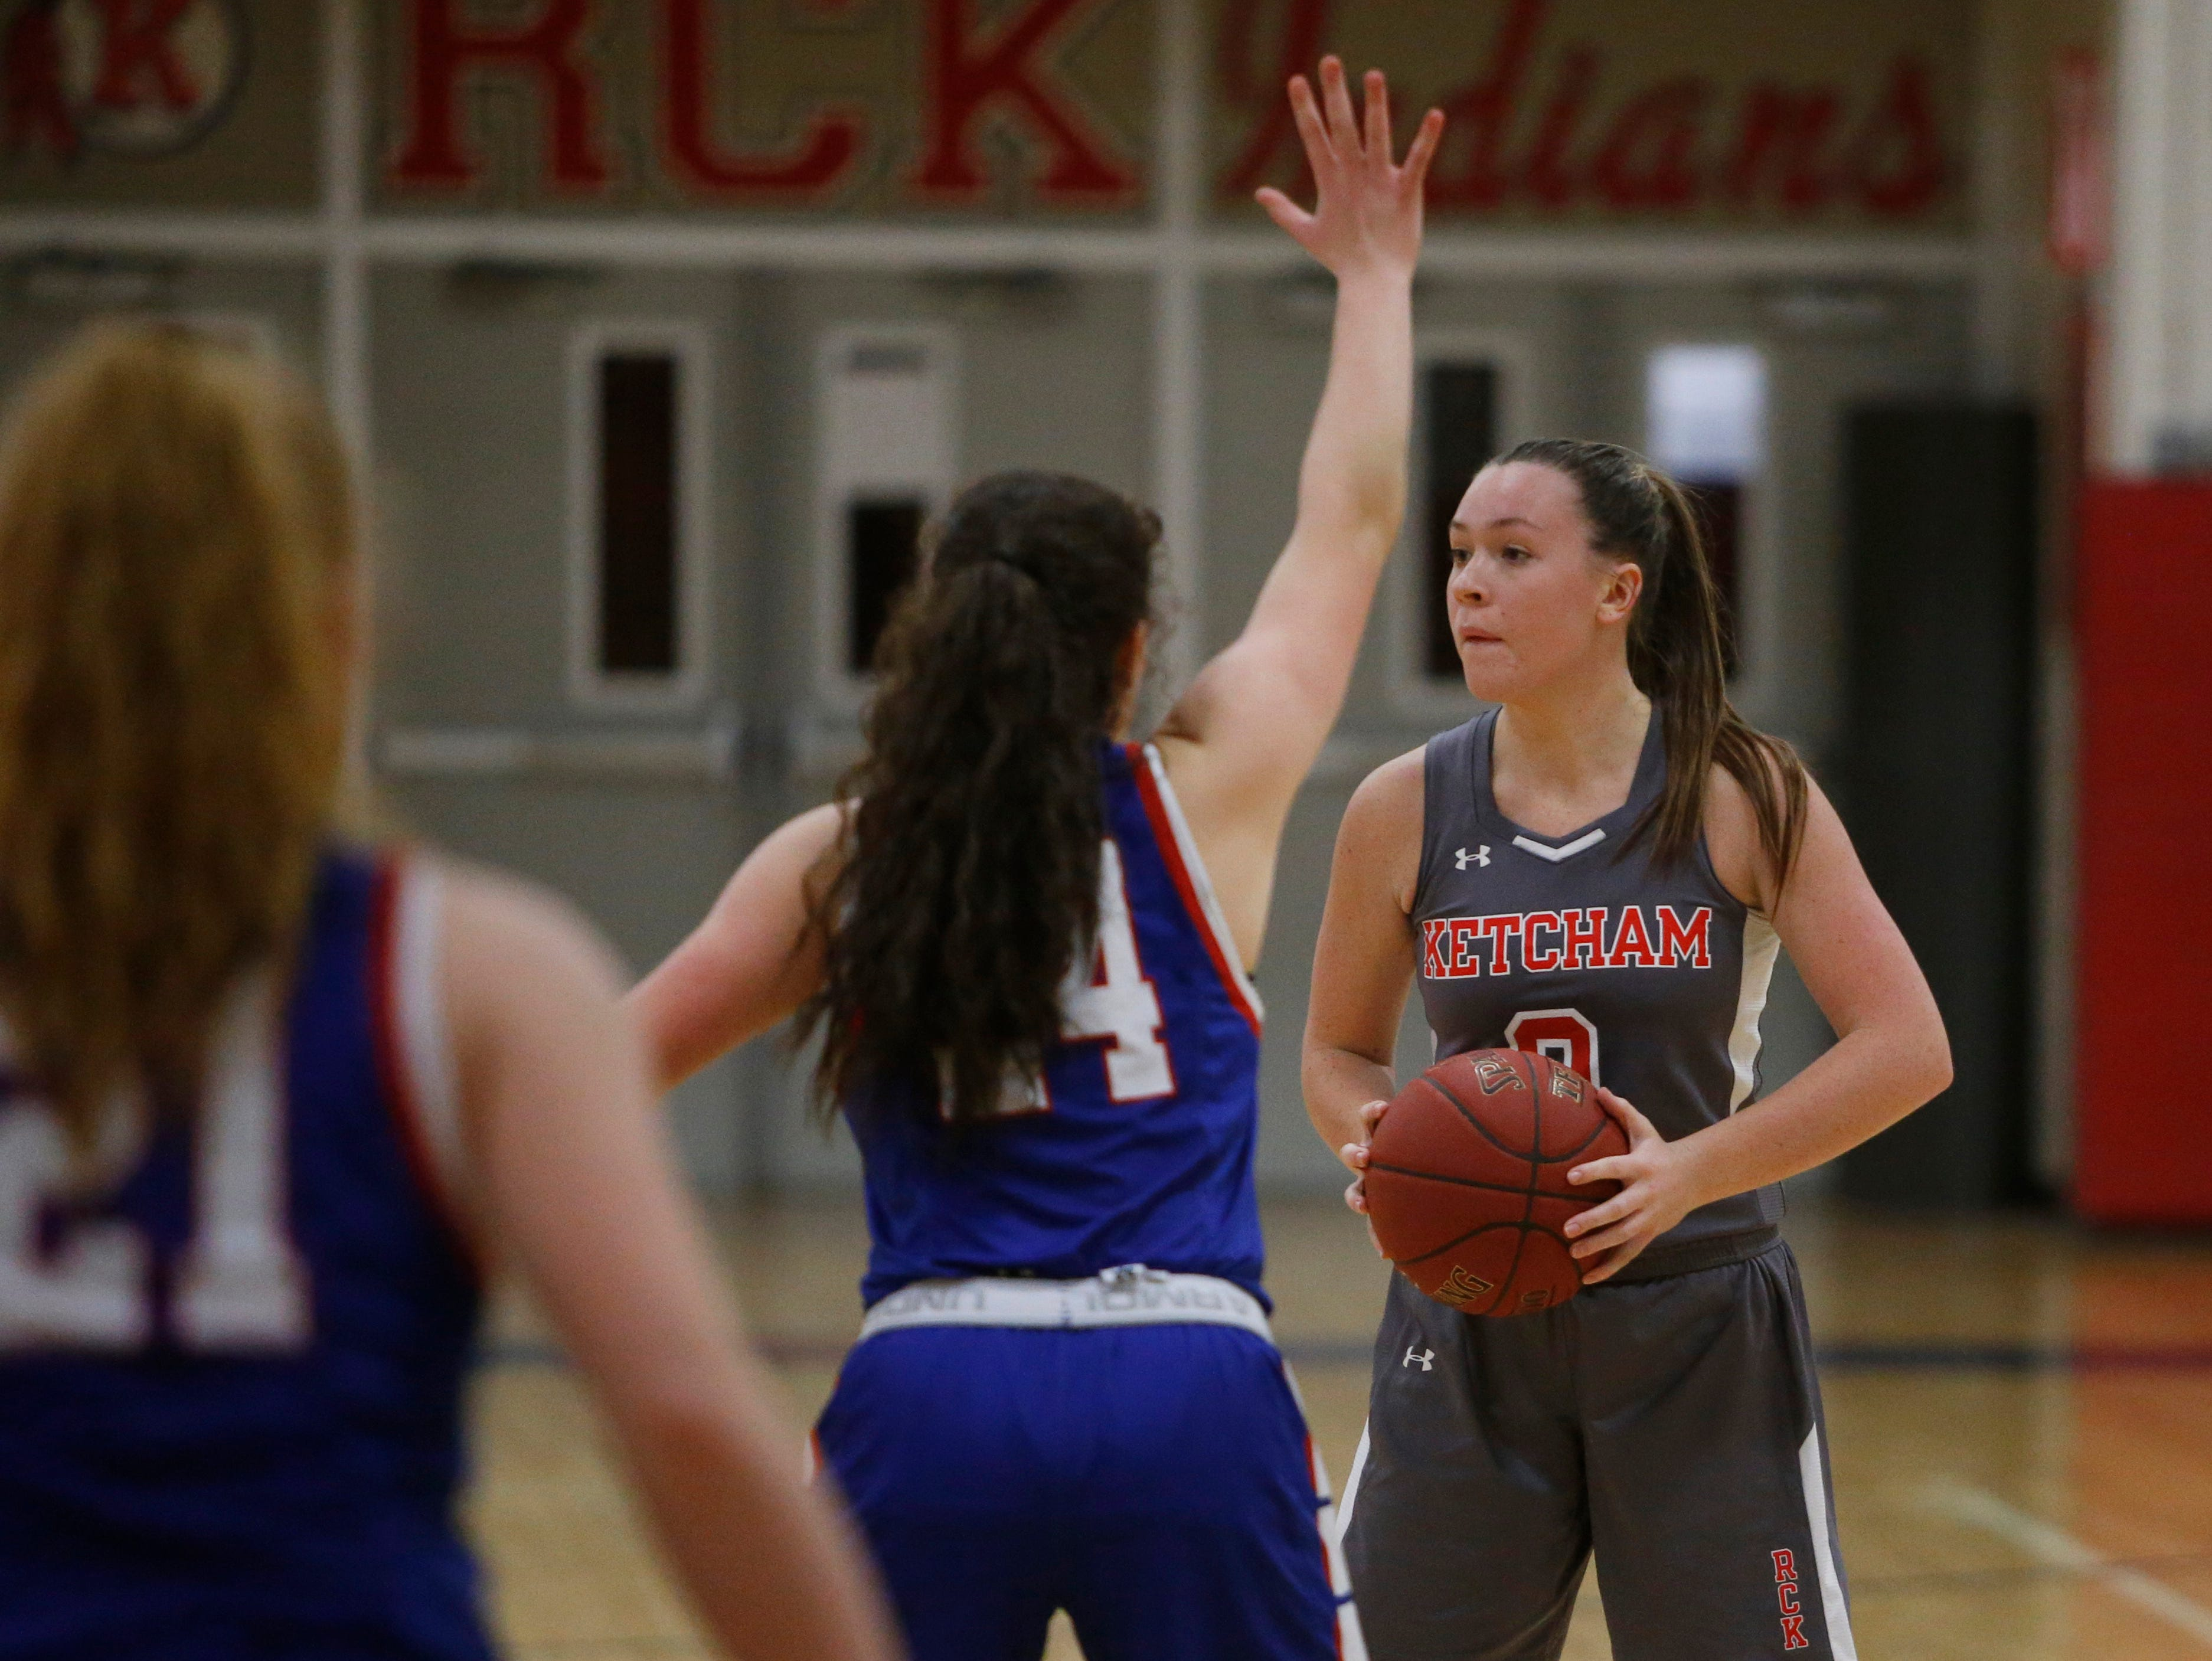 Action from Thursday's game between Roy C. Ketcham and Carmel on February 14, 2019. Katie Wall scored her 2000th point during the game.